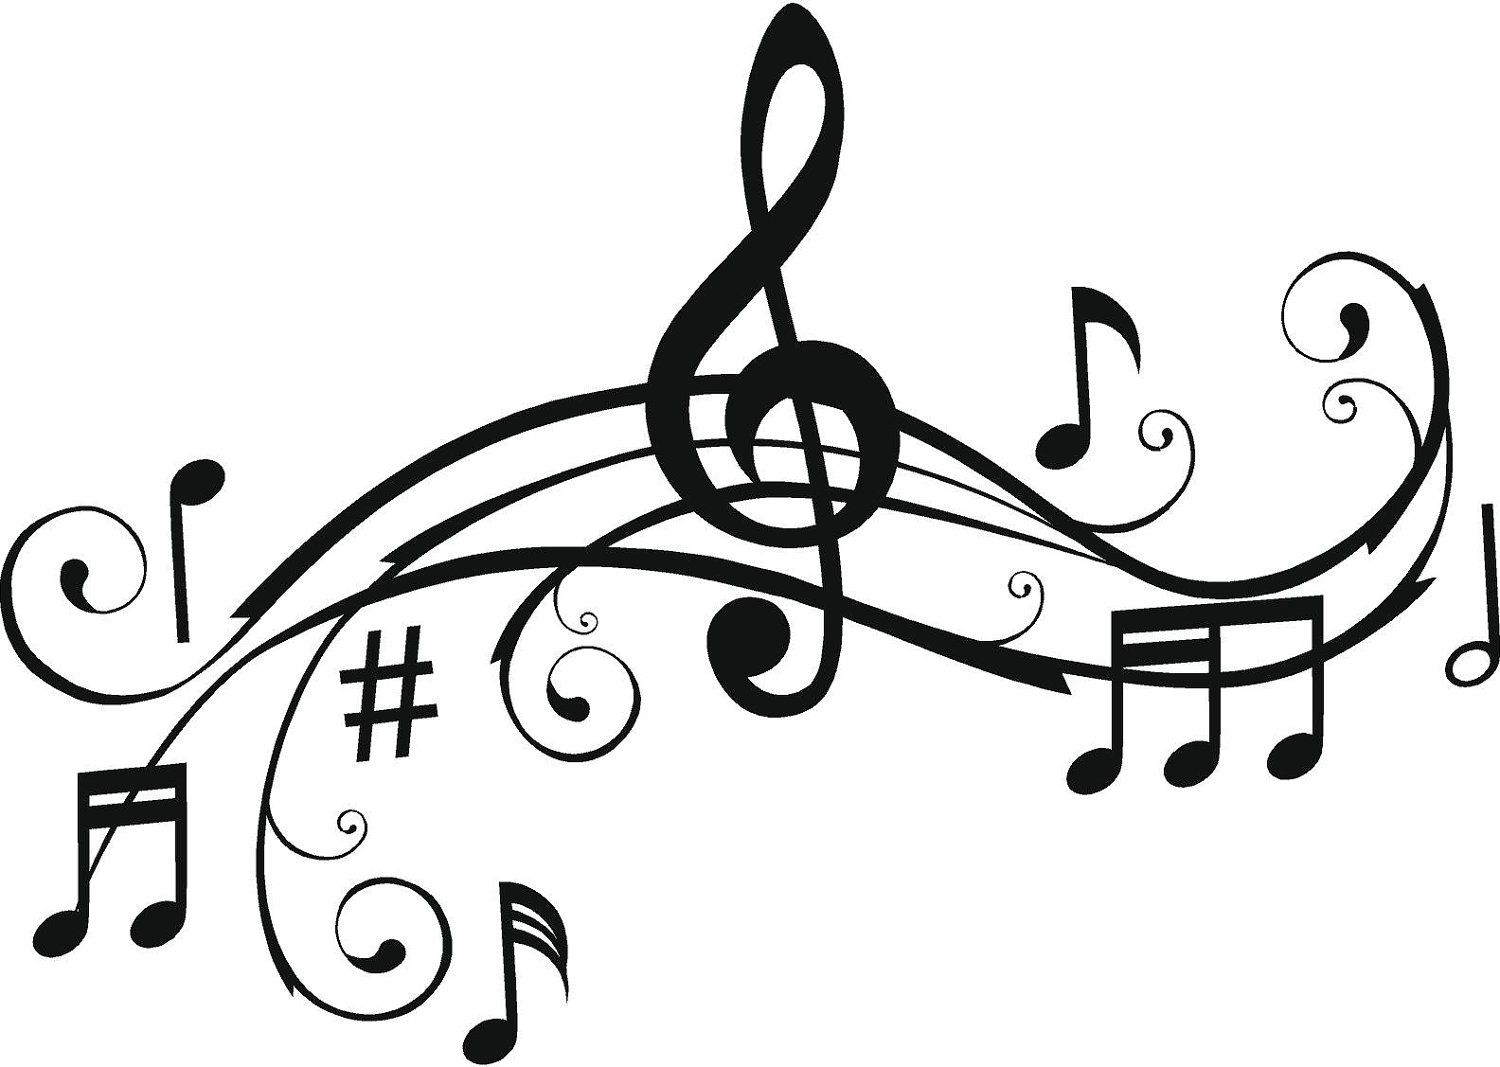 Music Notes, Wall Art Words, Vinyl Lettering, Stickers.